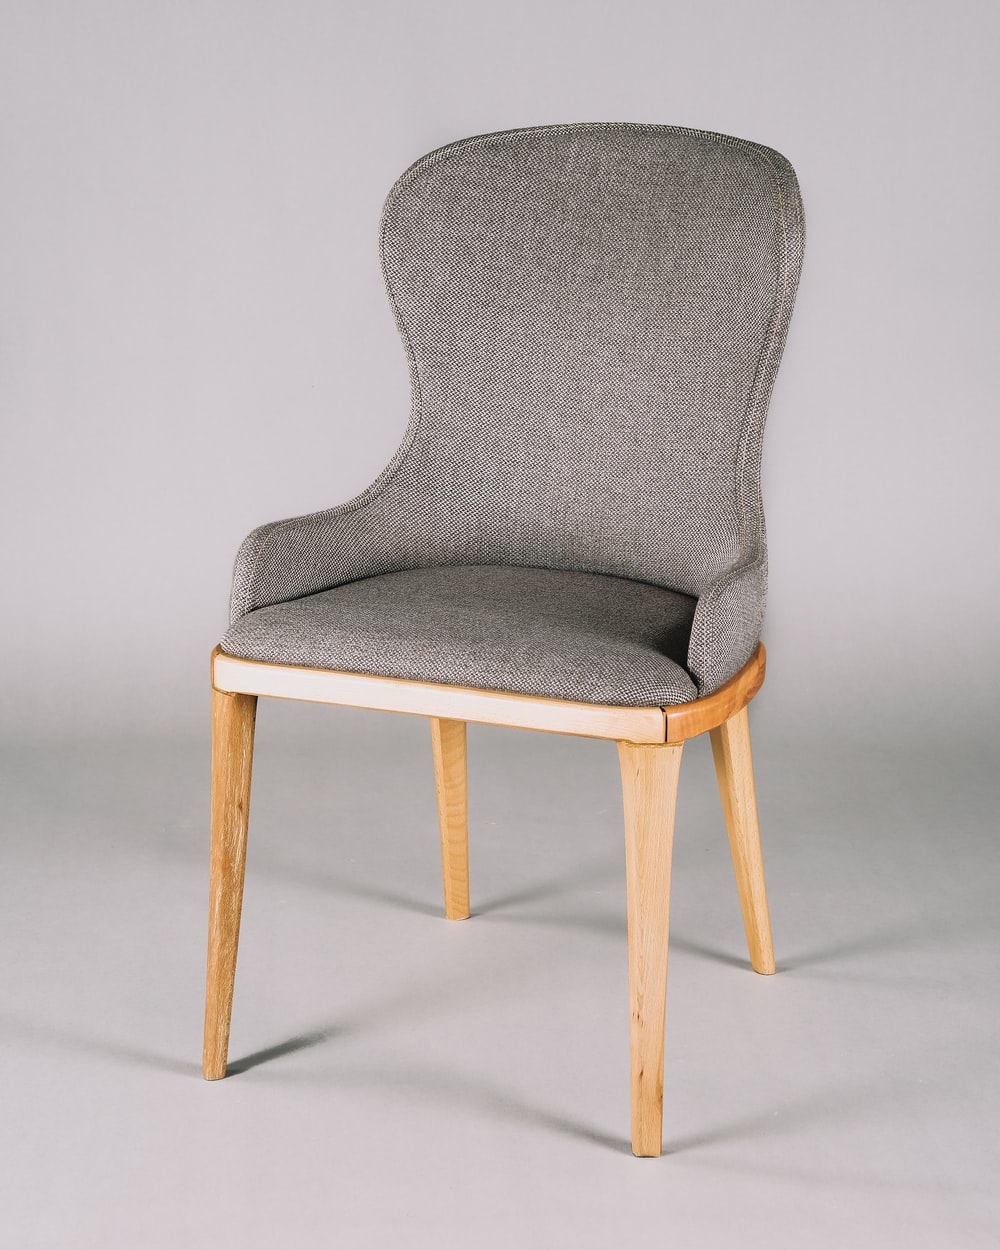 gray and white padded chair